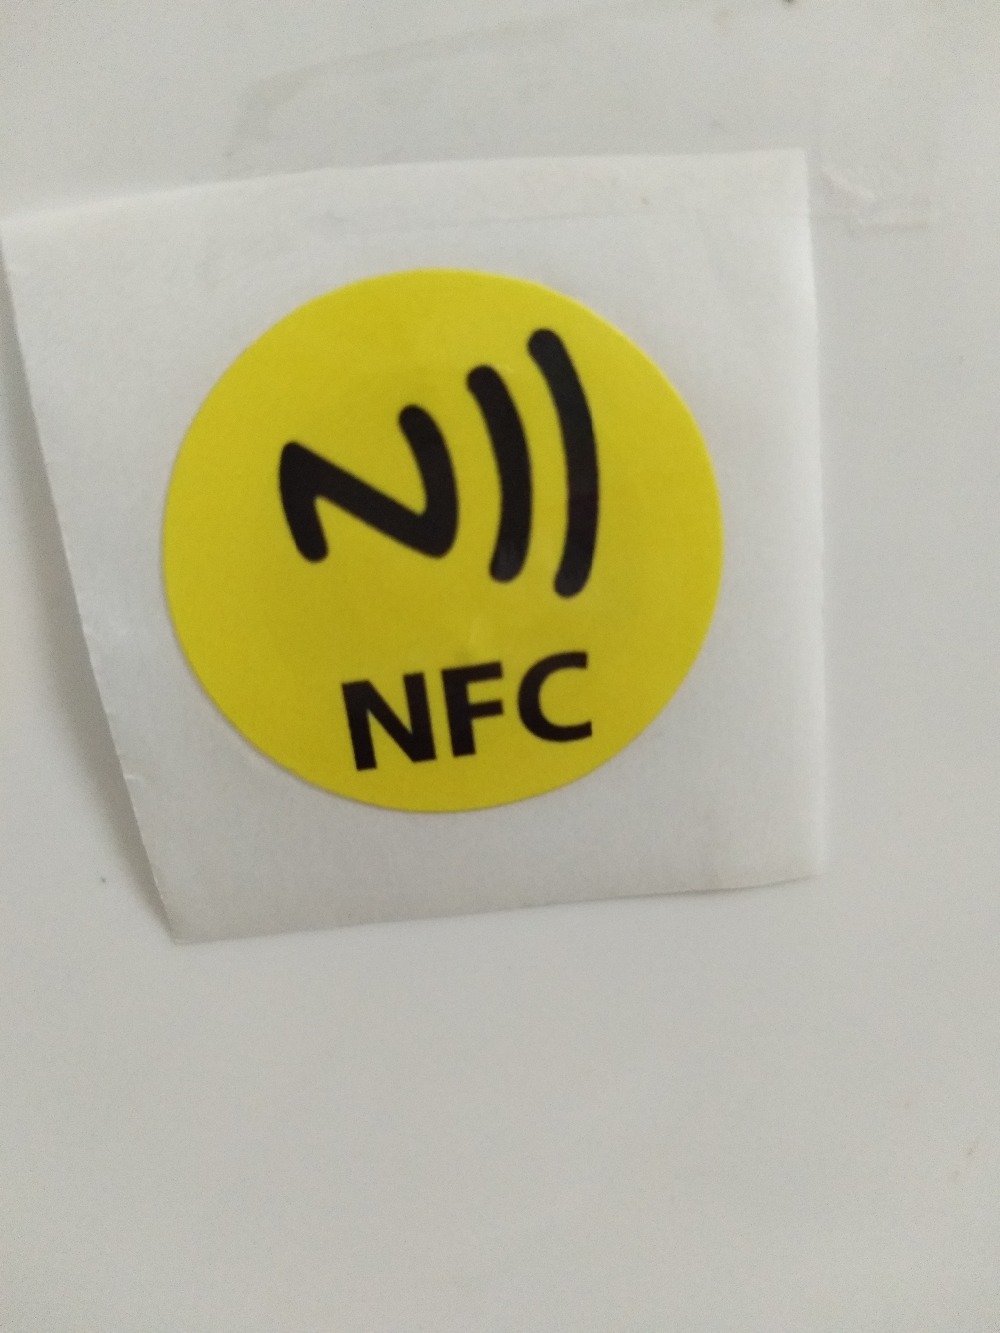 10pcs/Lot NFC Tags Sticker 13.56MHz ISO14443A Ntag 213 NFC Stickers Universal Label Ntag213 RFID Tag for all NFC enable 4pcs lot nfc tag sticker 13 56mhz iso14443a ntag 213 nfc sticker universal lable rfid tag for all nfc enabled phones dia 30mm